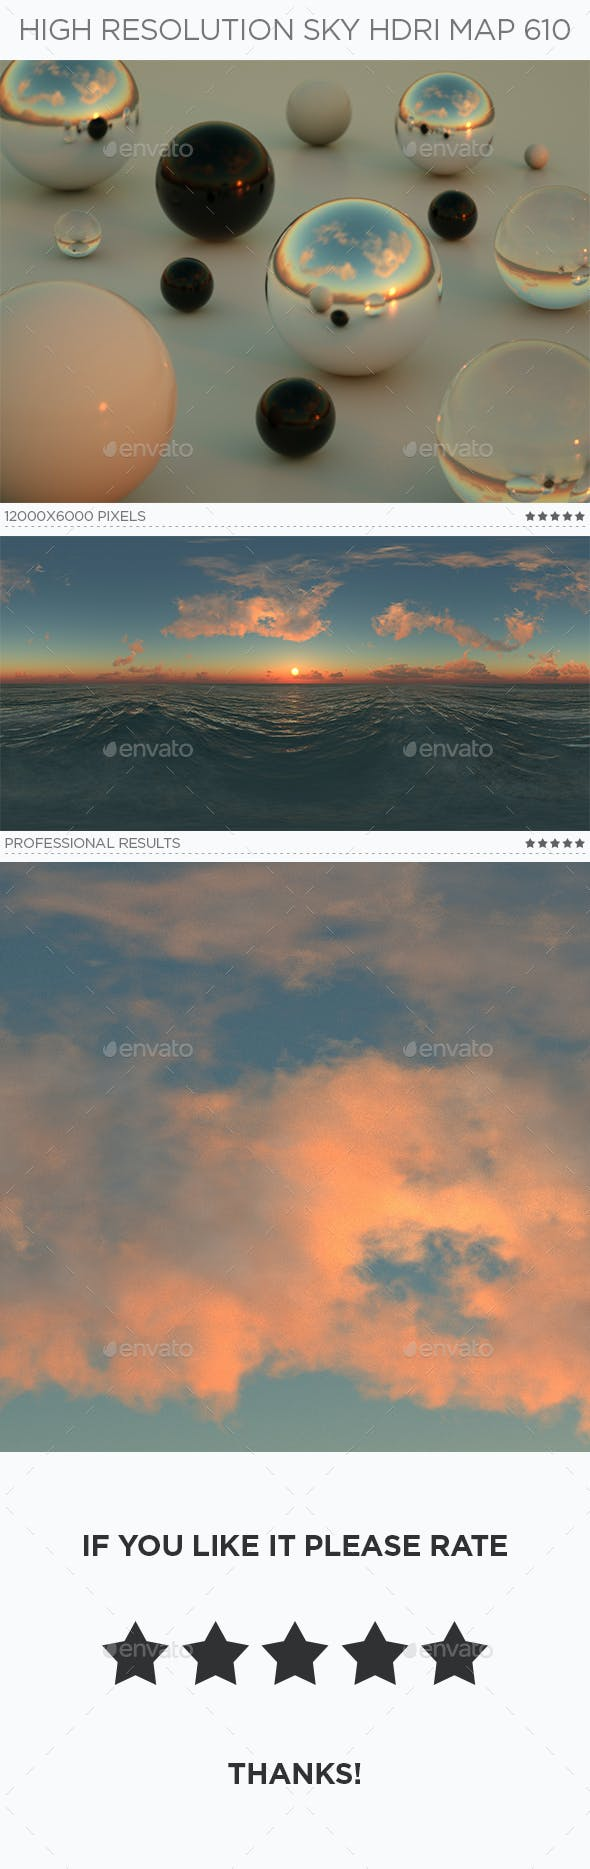 High Resolution Sky HDRi Map 610 - 3DOcean Item for Sale